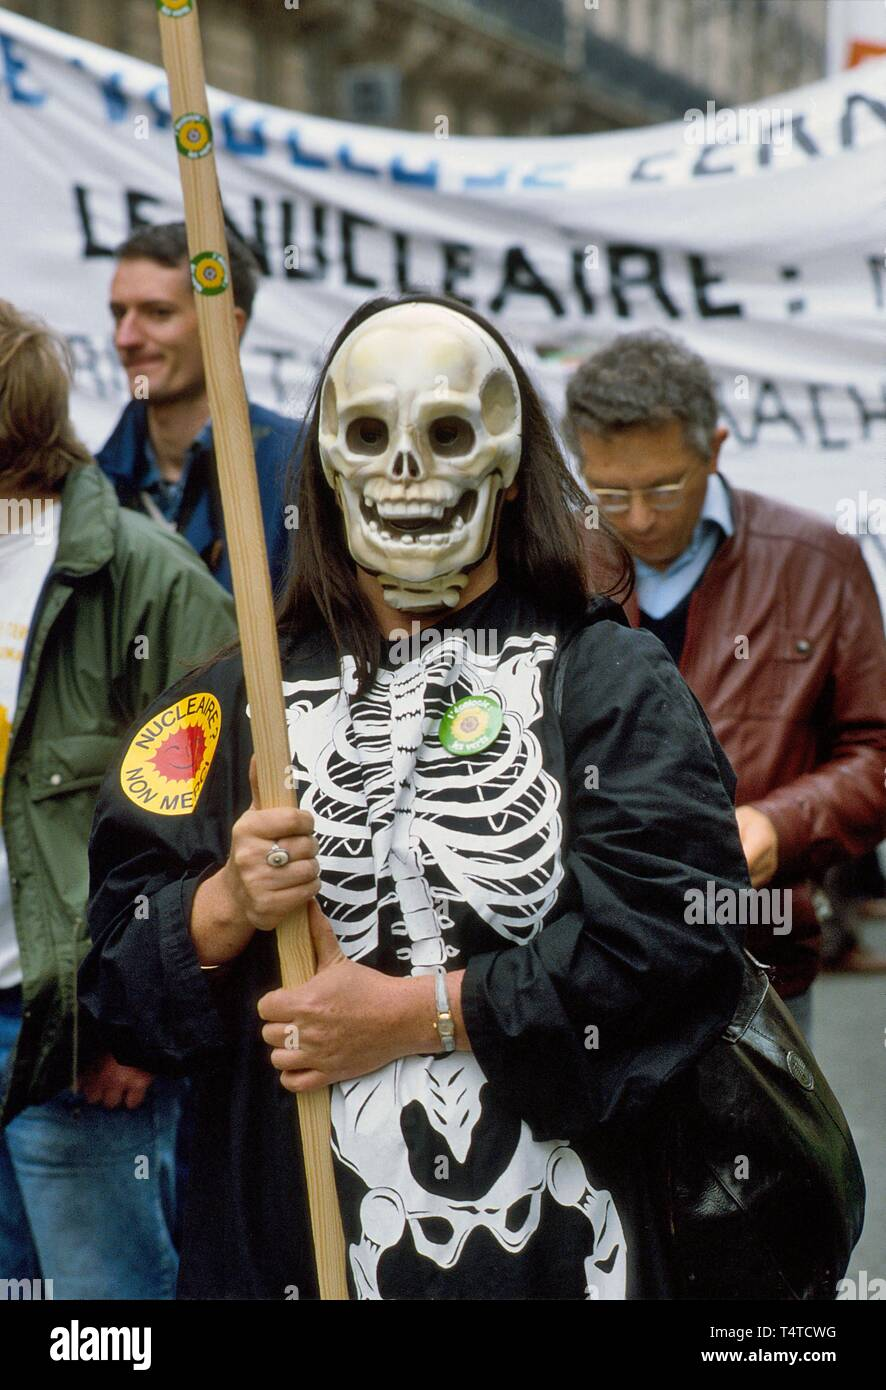 Antinukleäre Demonstration in Paris, Frankreich, Juni 1987 Stockbild